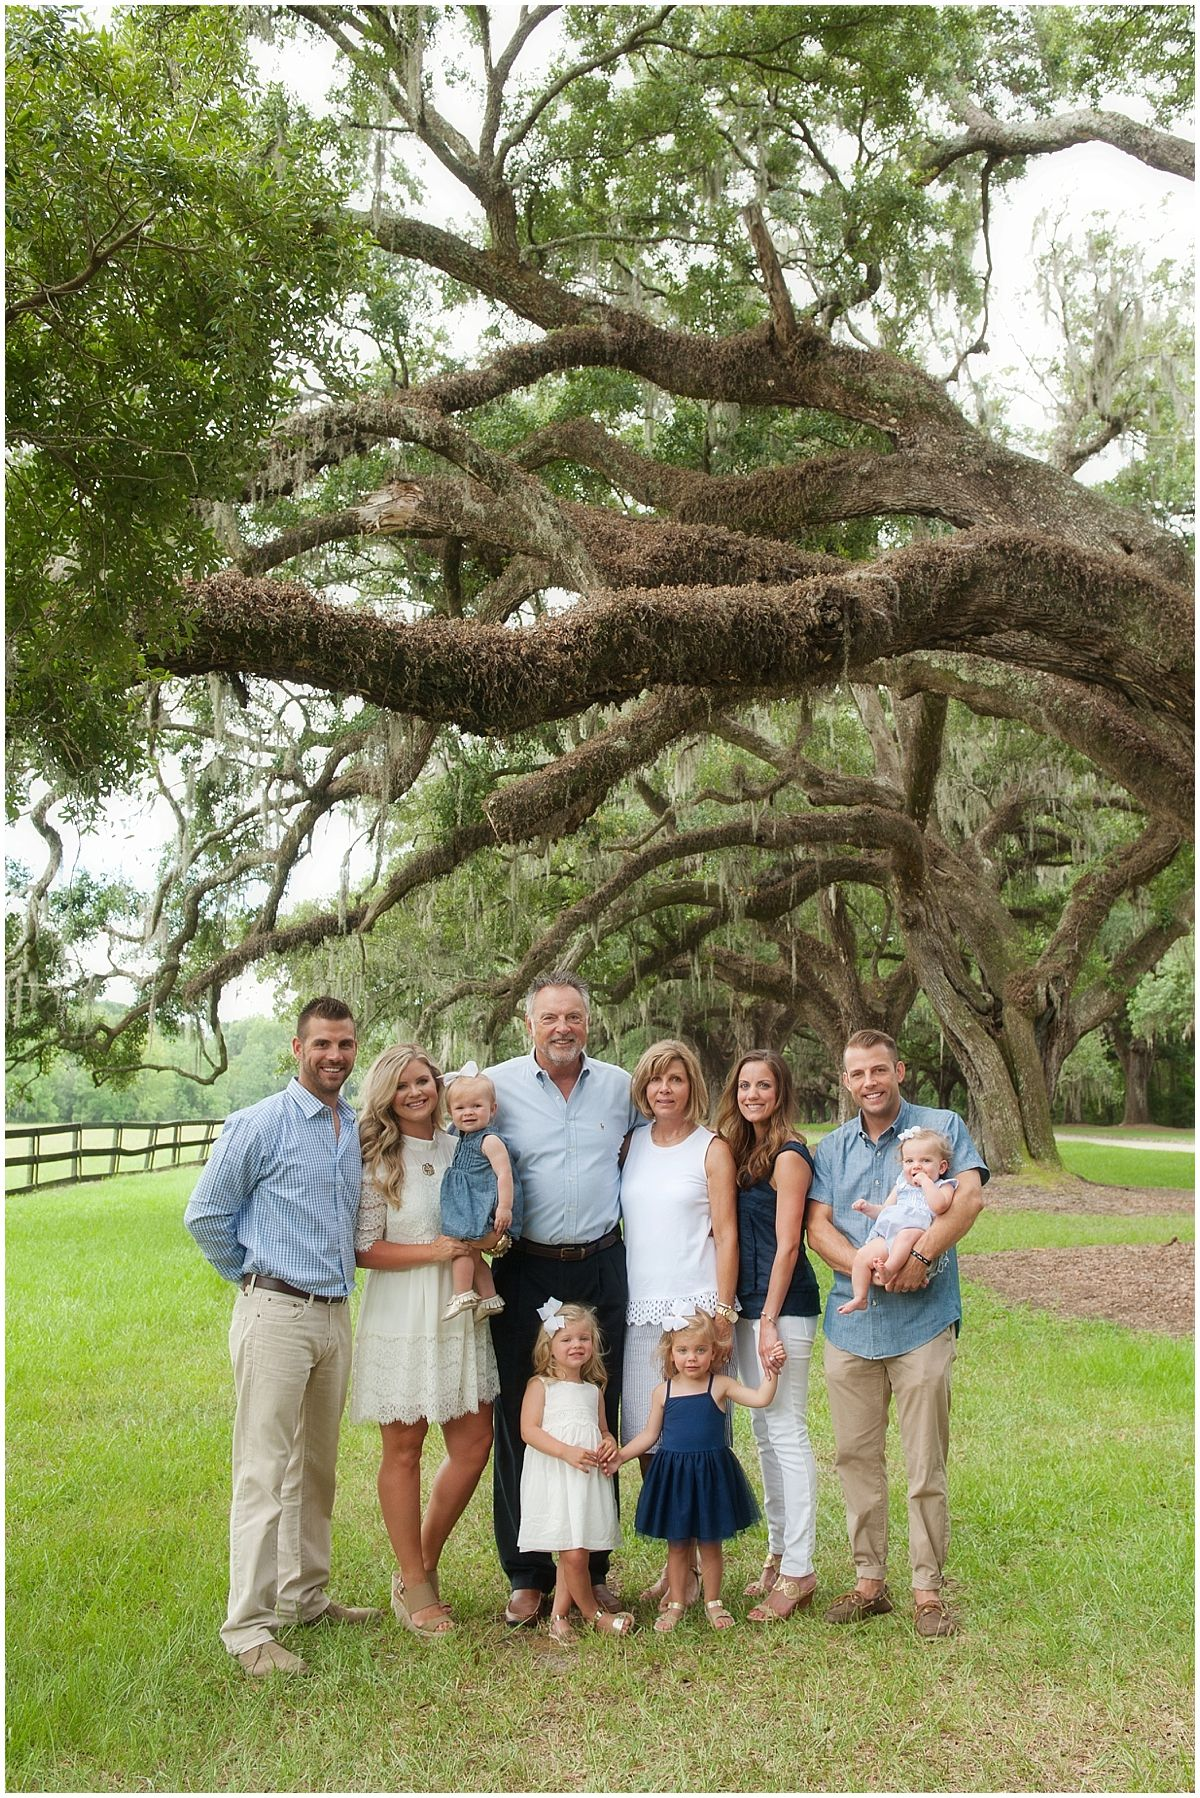 Charleston Family Photos, Neutral Family Photo Outfits, What to wear for family photos #familyphotooutfits